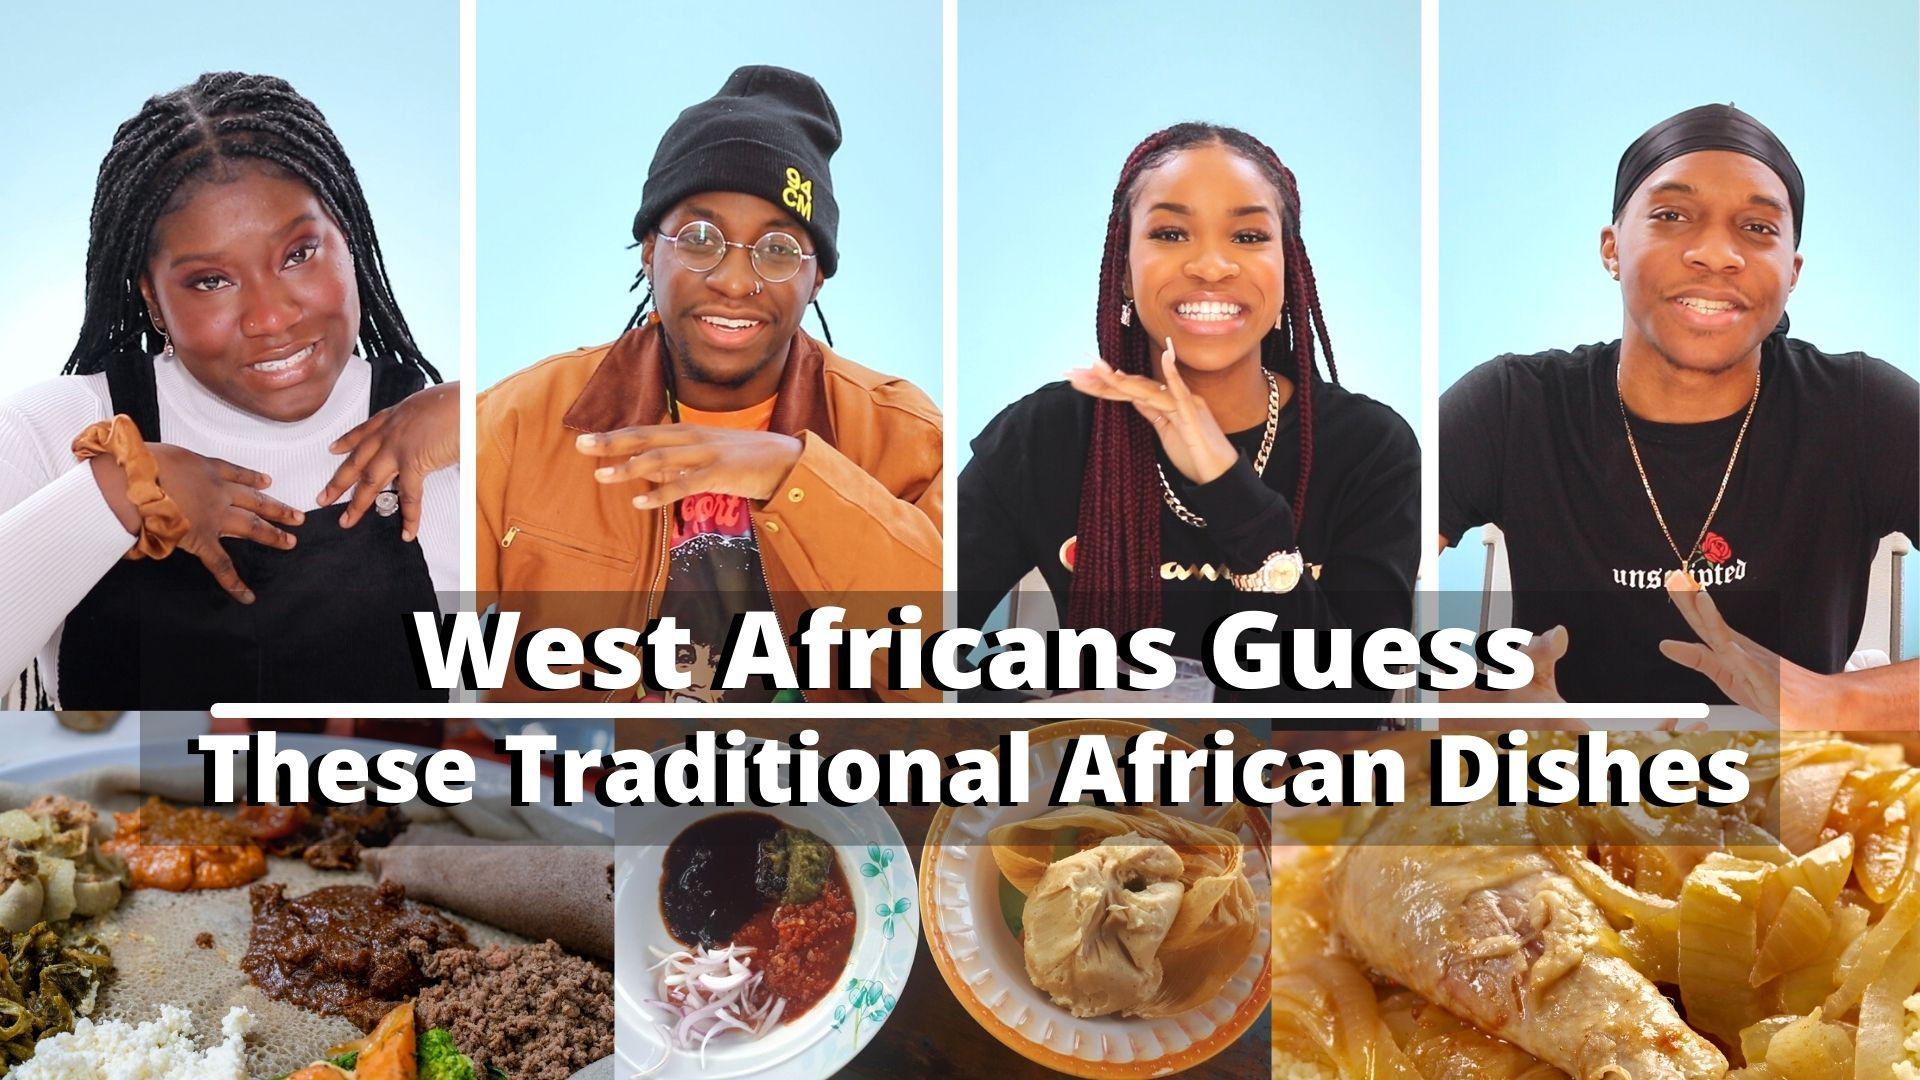 www.buzzfeed.com: Can West Africans Guess these African Dishes